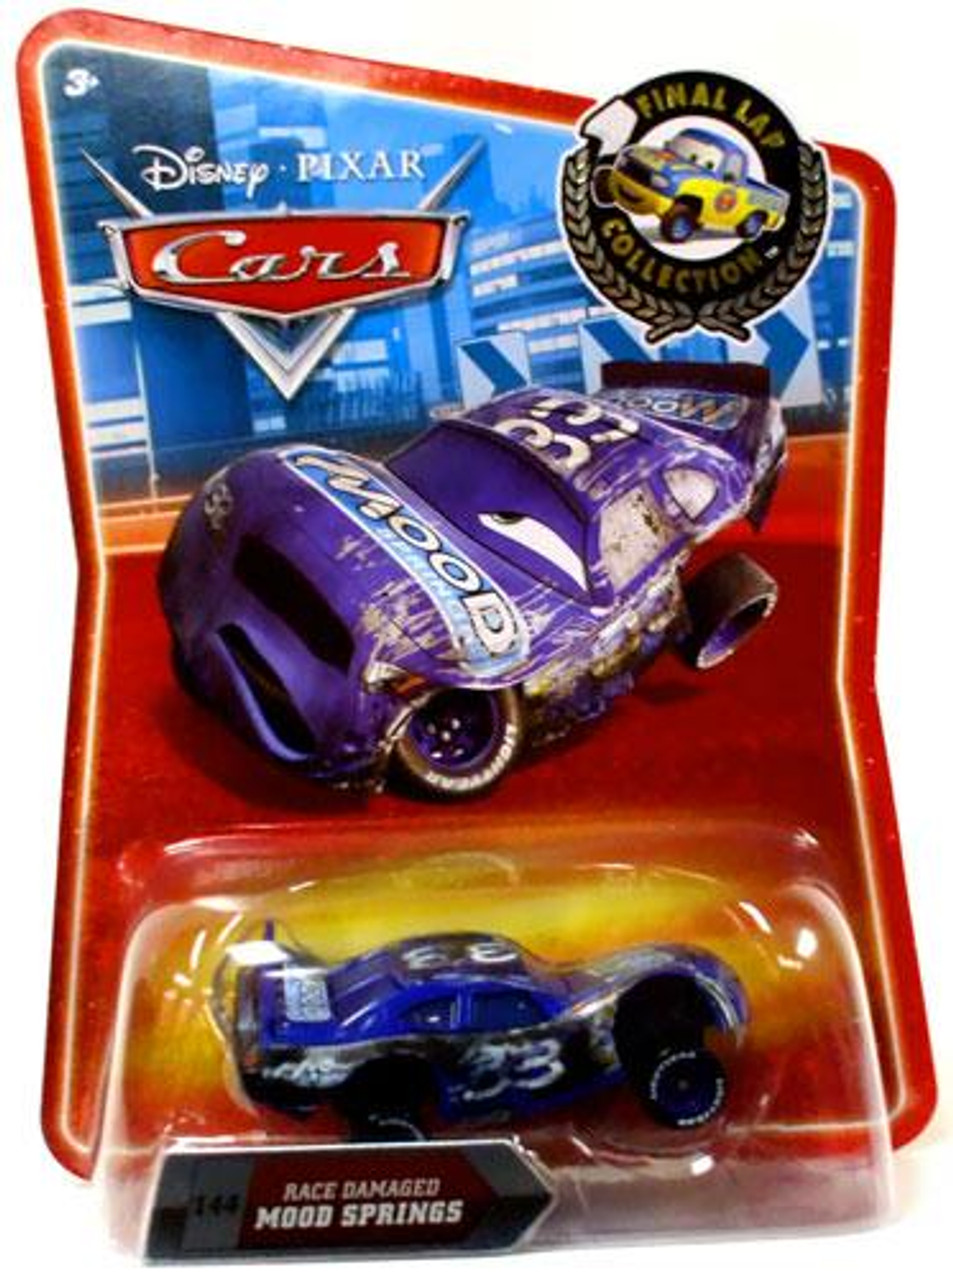 Disney Cars Final Lap Collection Race Damaged Mood Springs Exclusive Diecast Car